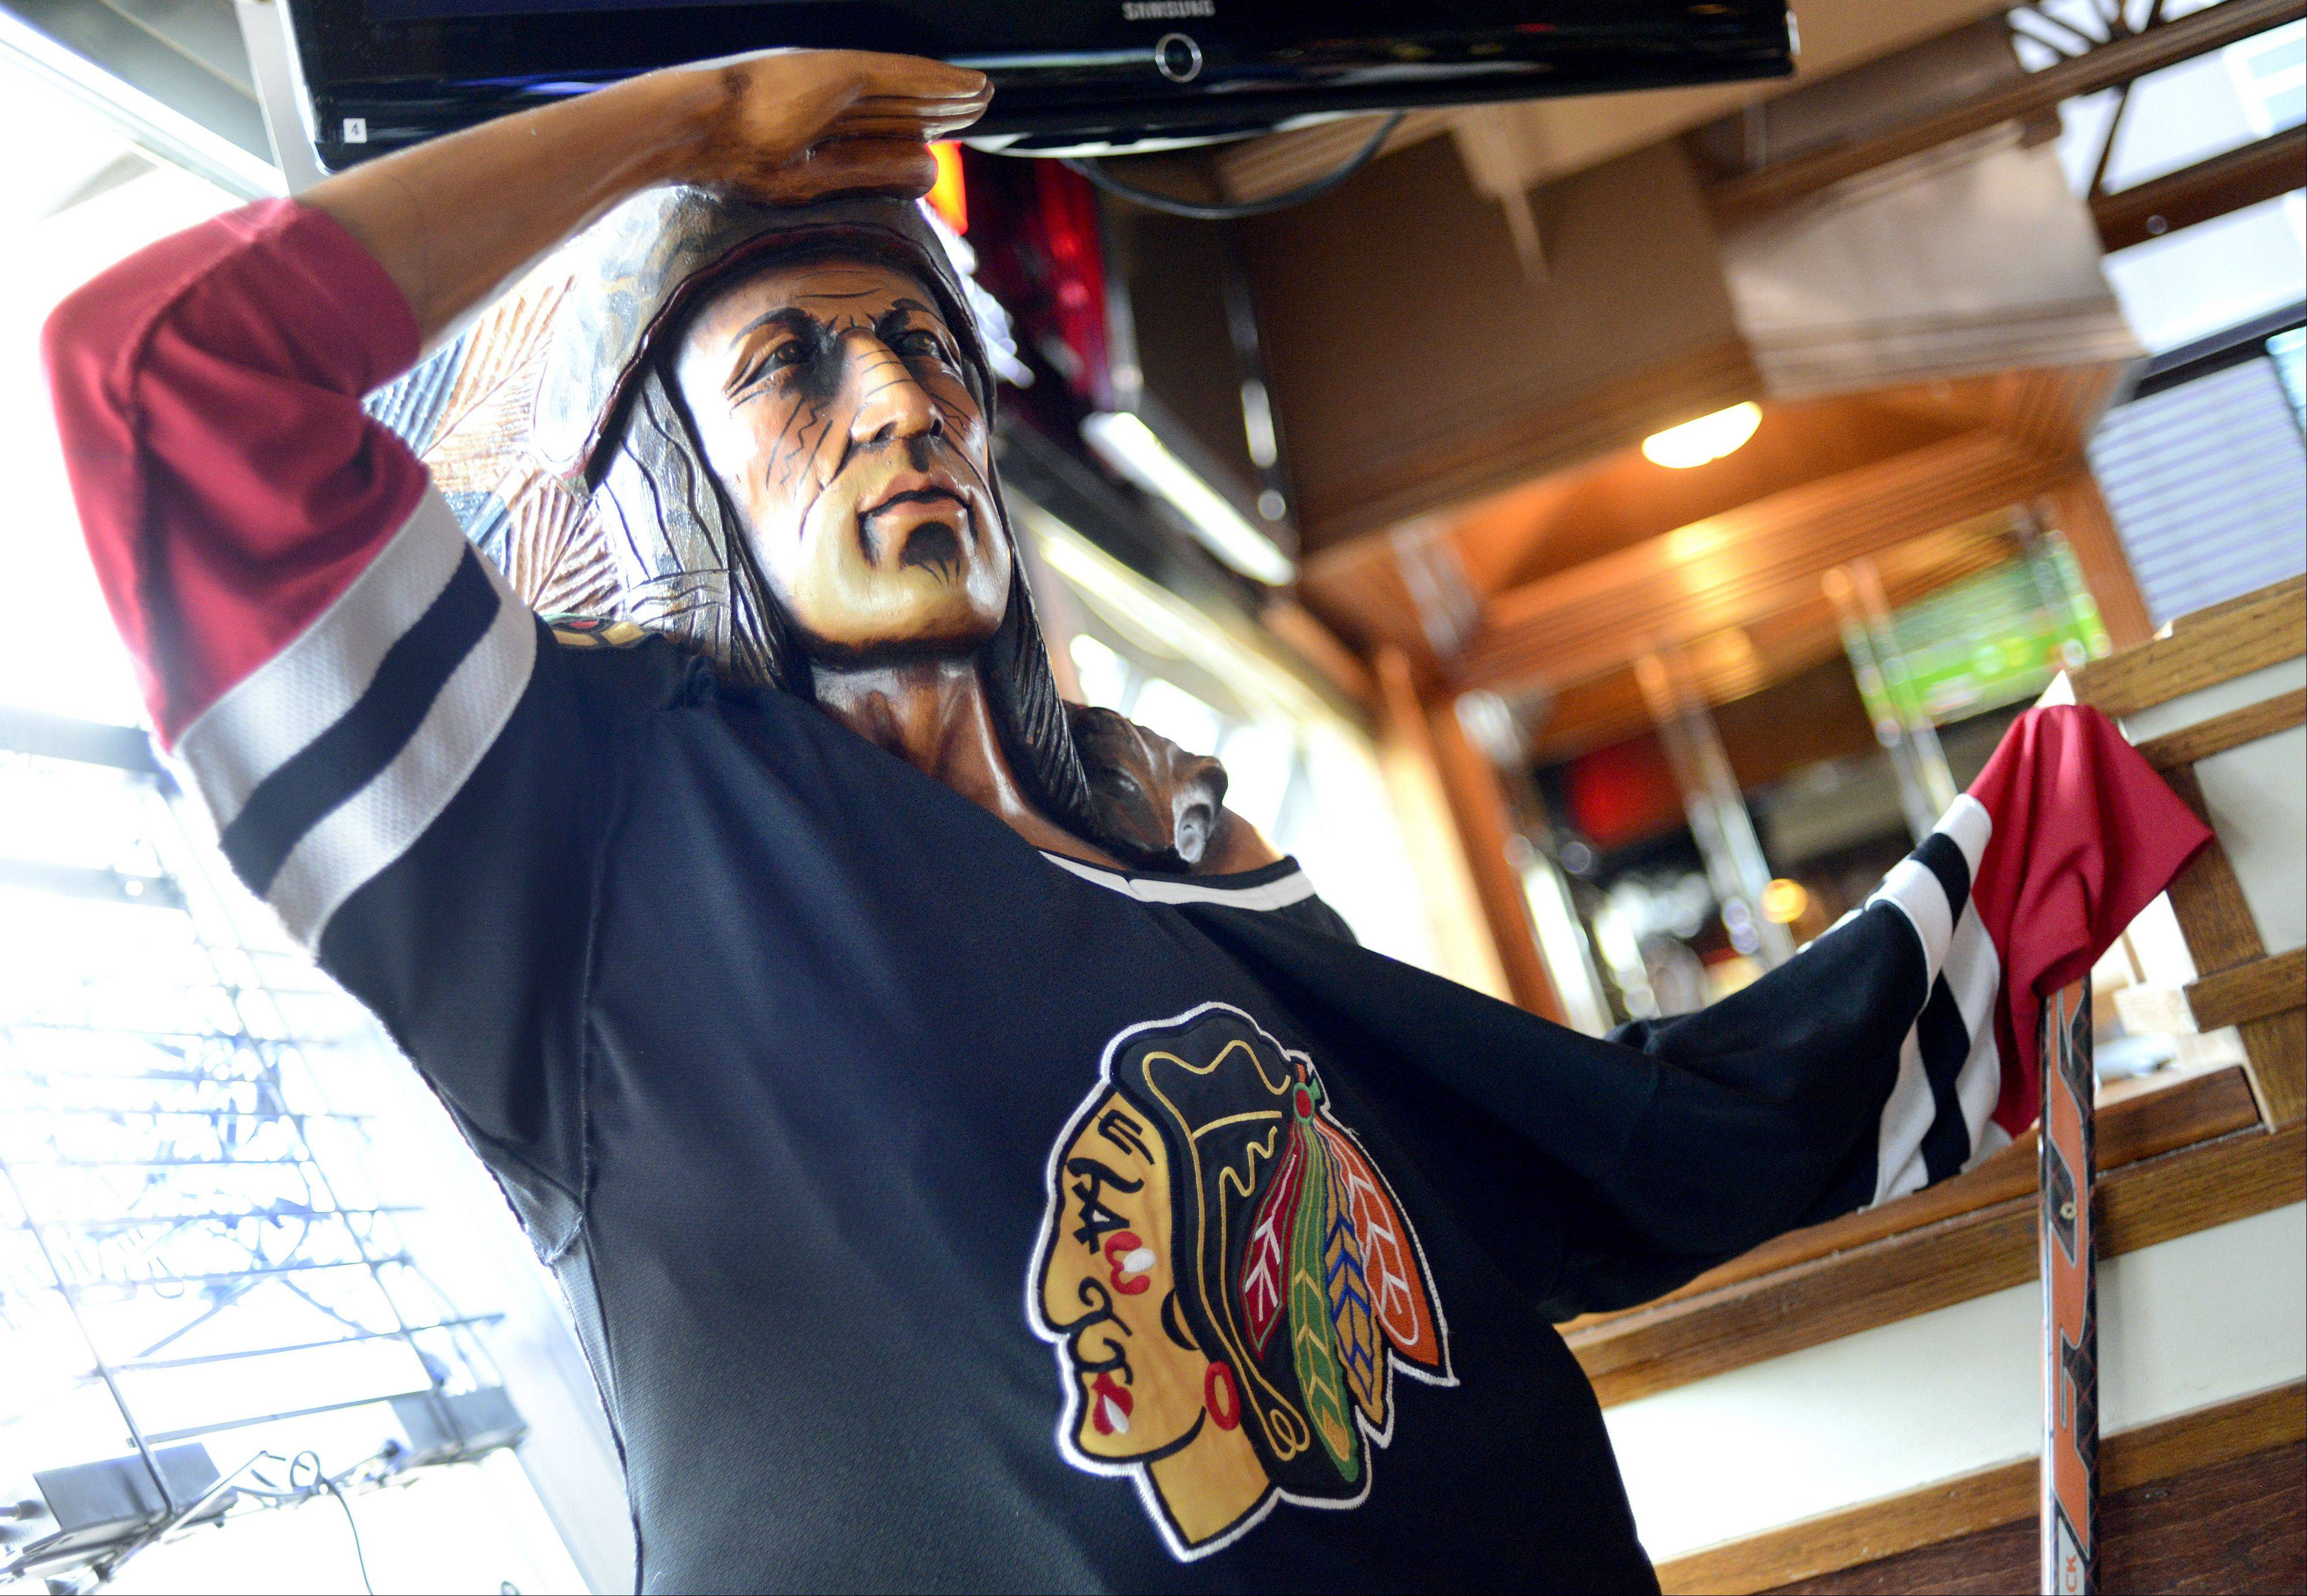 A chief wears the official Chicago Blackhawks jersey, with hockey stick in hand, at Chelios' Pub in Aurora.